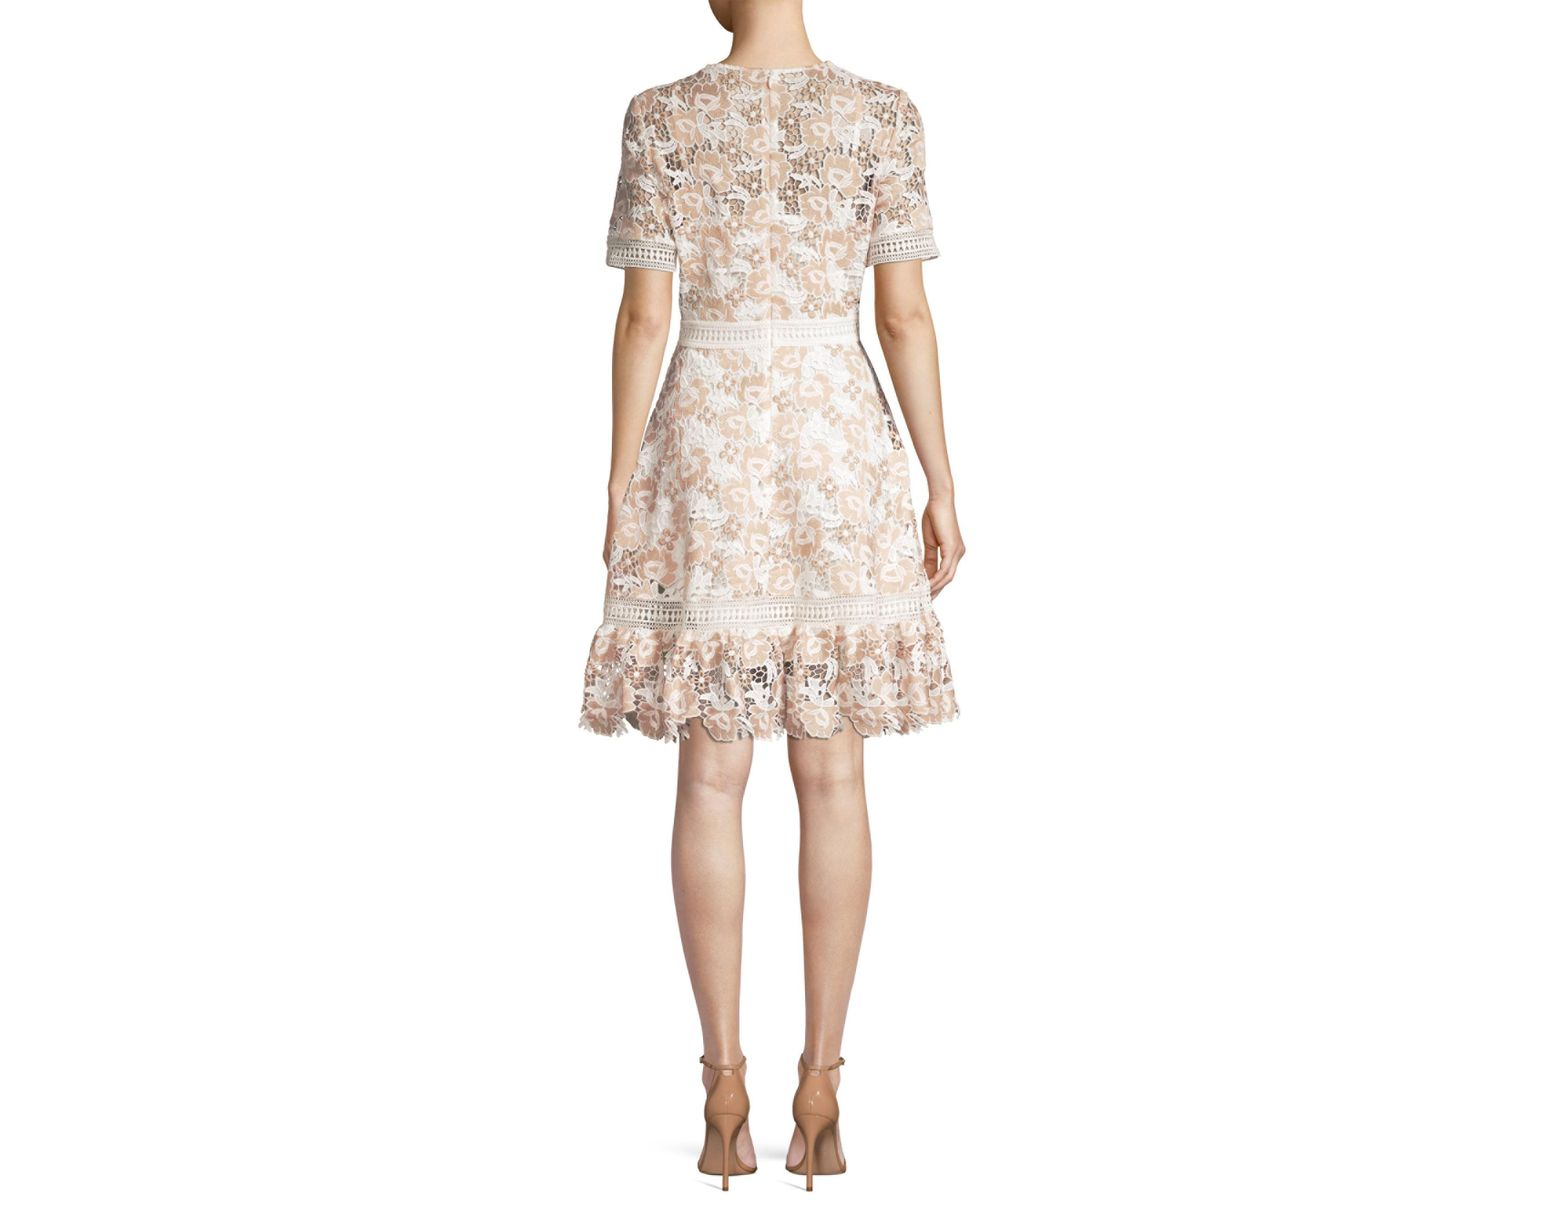 e0639ace3150d5 Shoshanna Toscana Floral Lace A-line Dress in Natural - Save 25% - Lyst